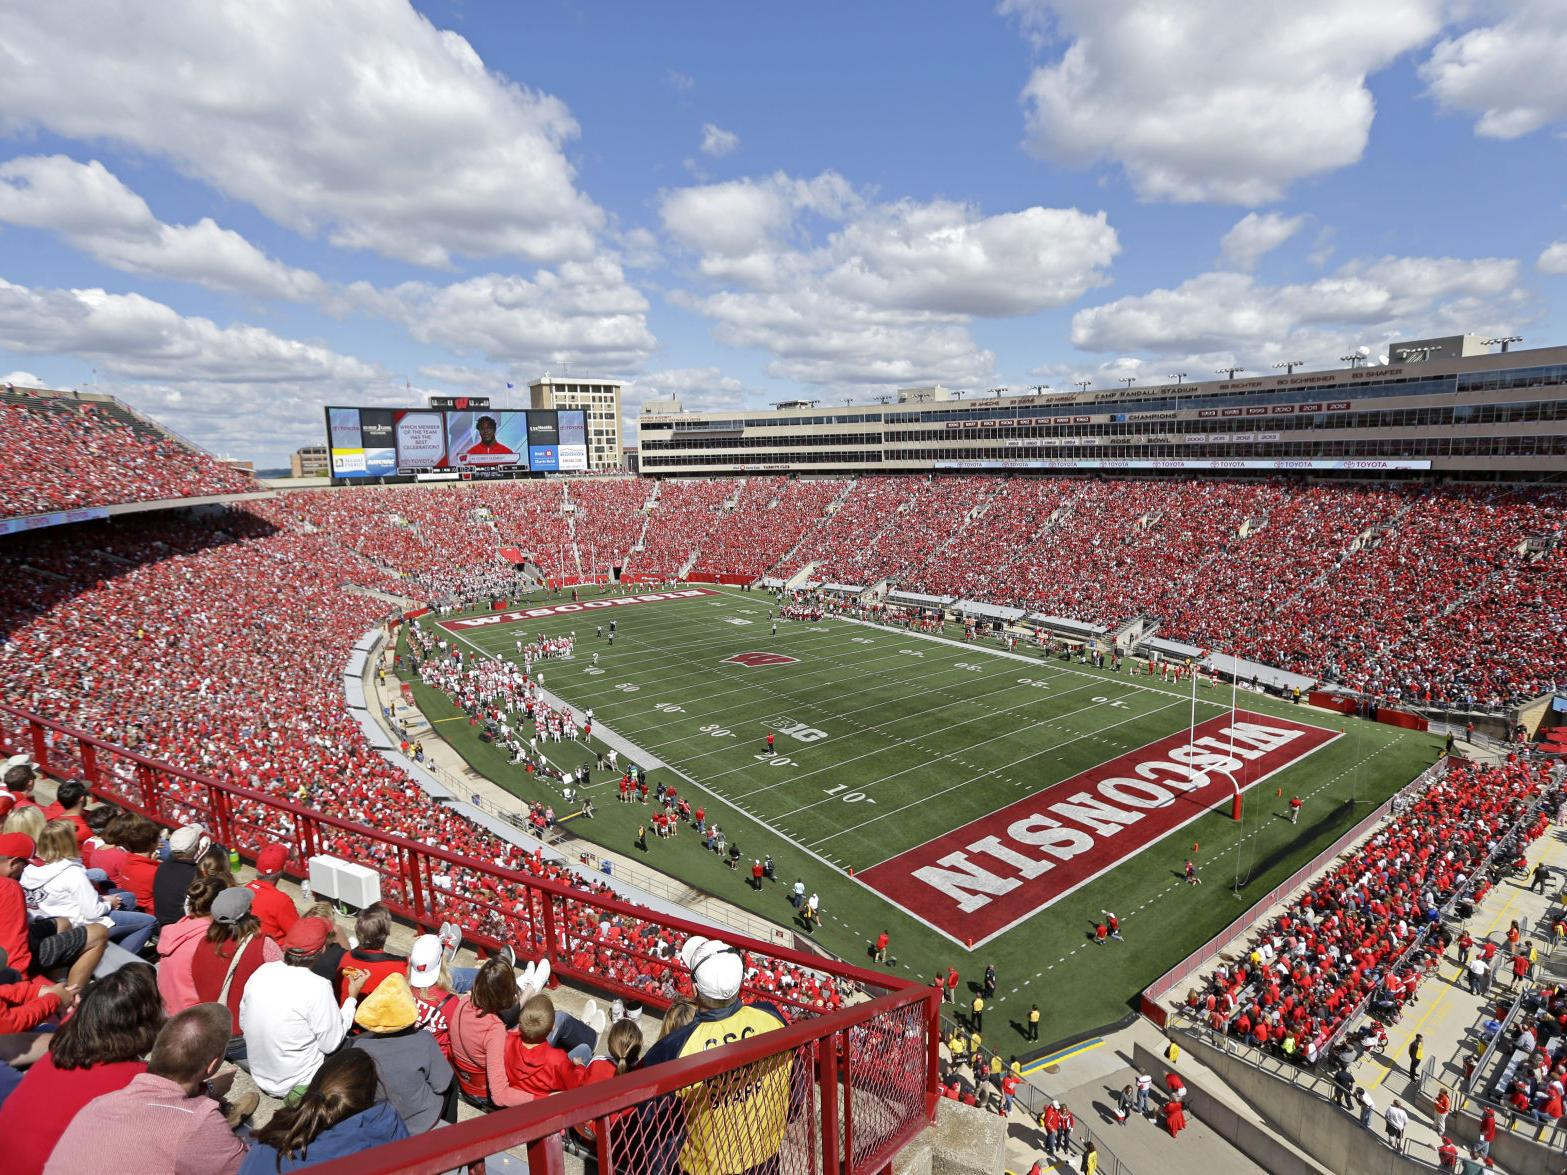 Wisconsin football: Big Ten releases schedule; Badgers open at home vs.  Illinois | Football | journaltimes.com